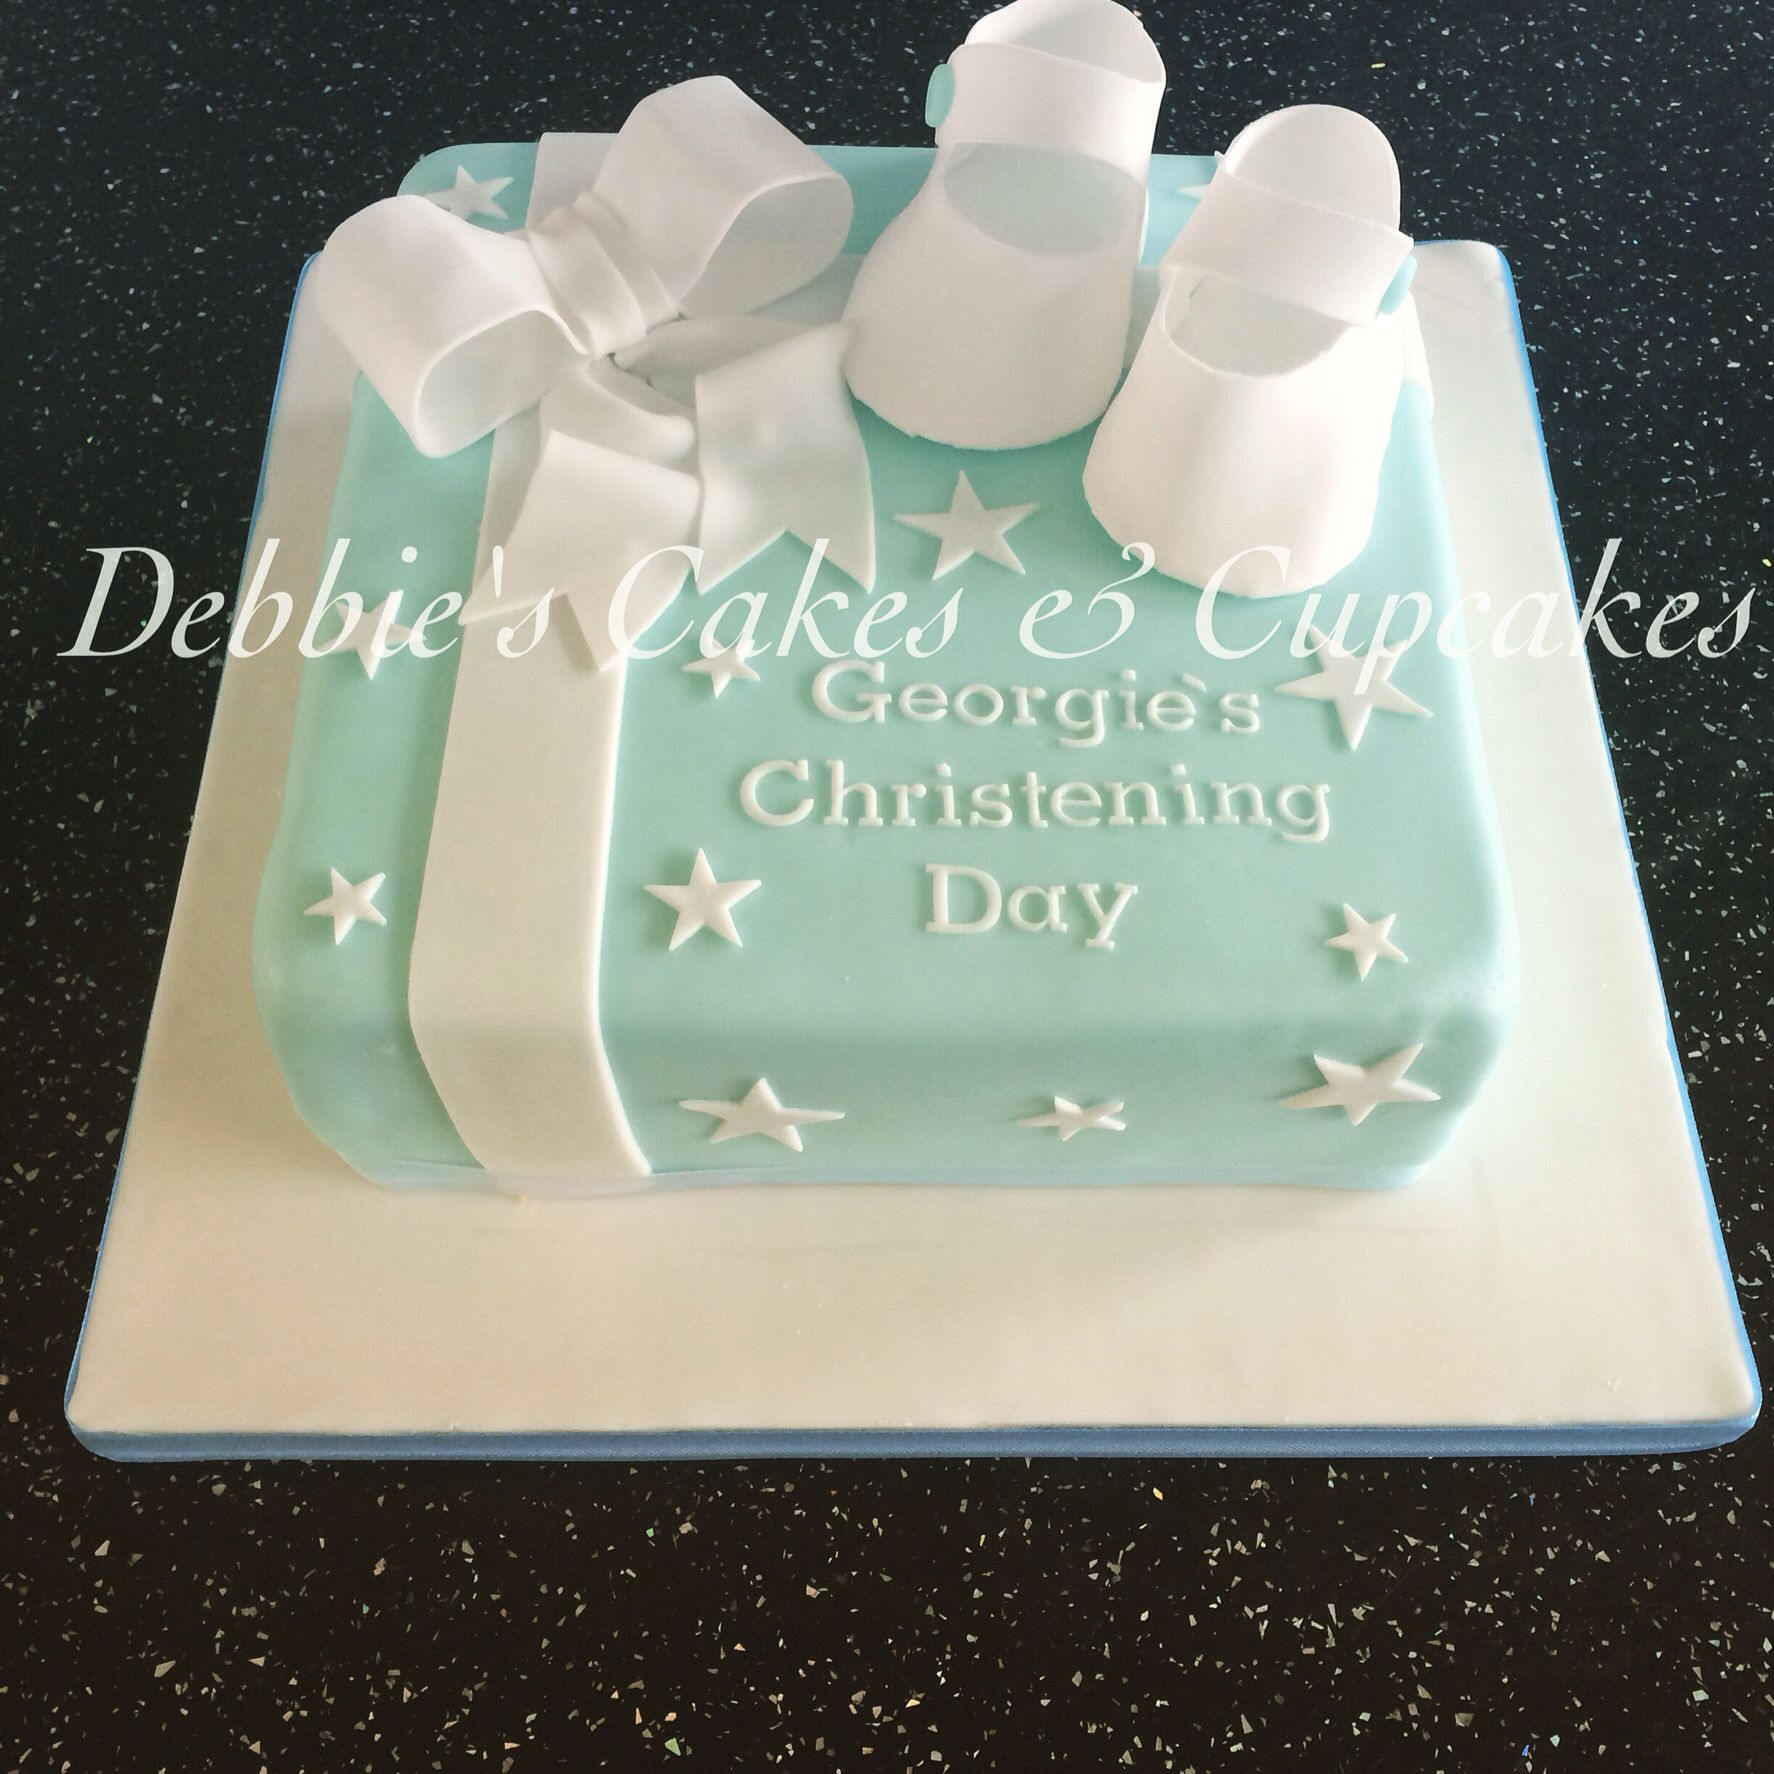 Christening cake for baby boy with booties and bow